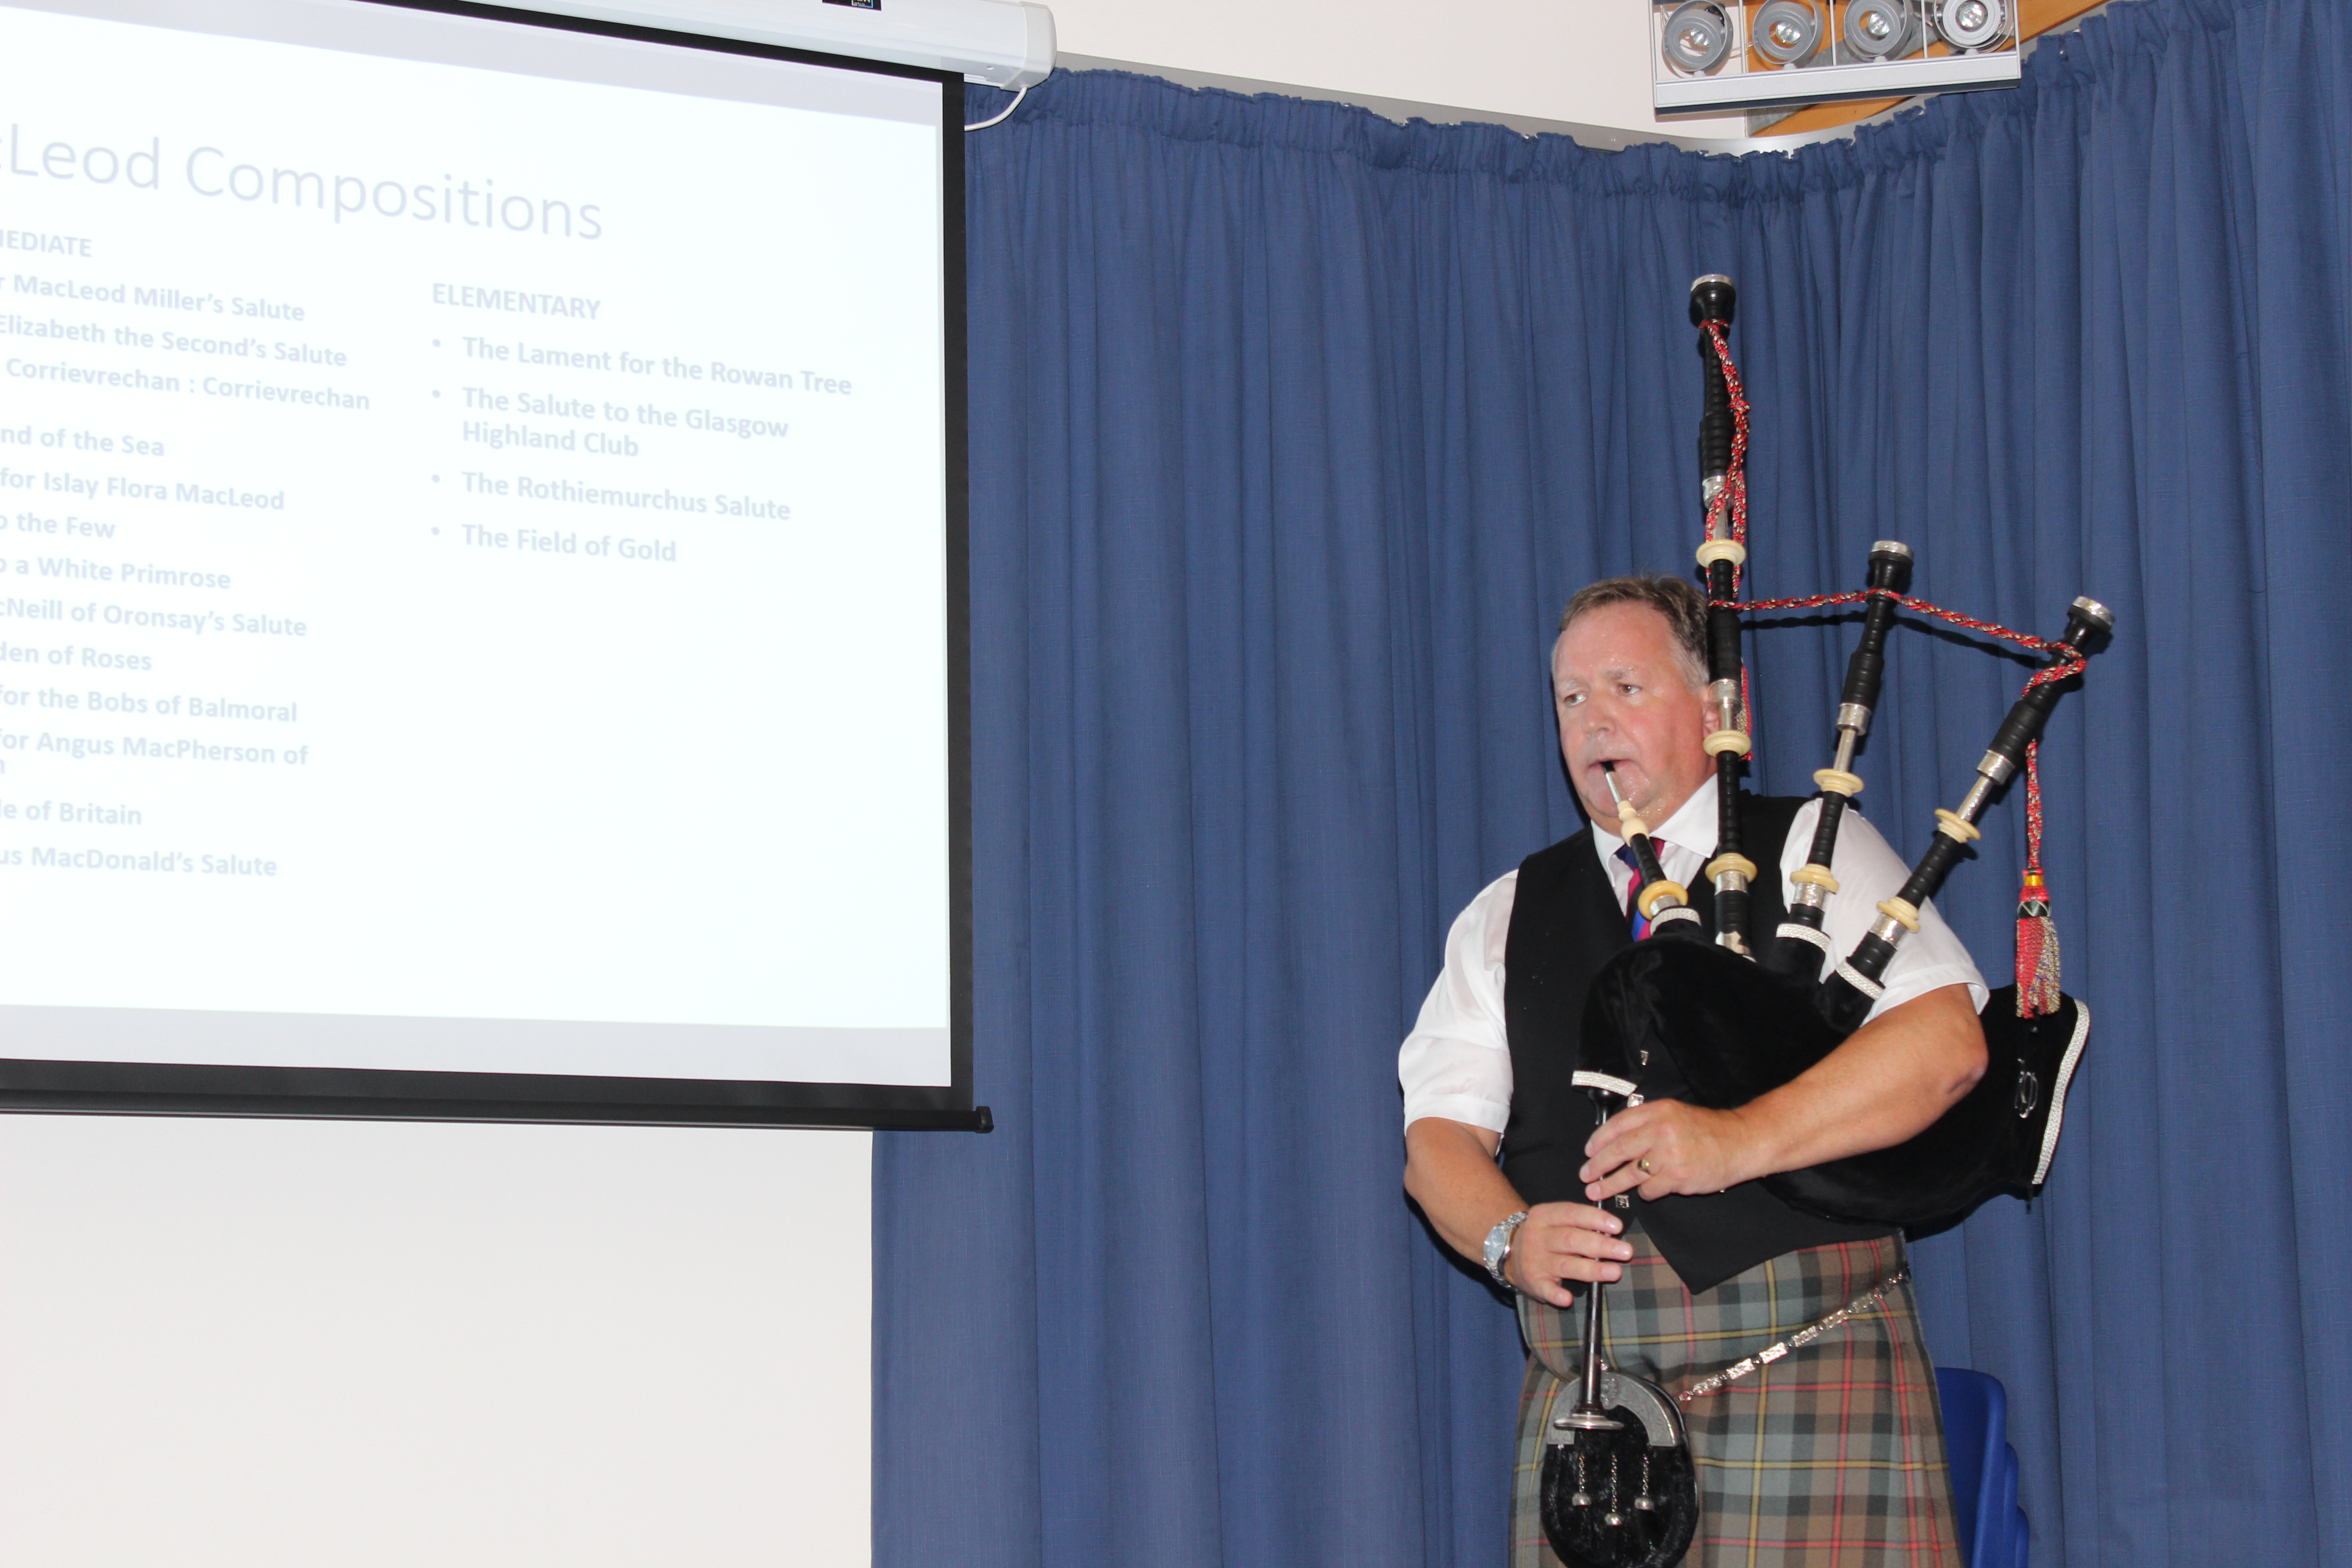 Roddy Macleod, director of the National Piping Centre and technical adviser on the book, playing a piobaireachd at the launch